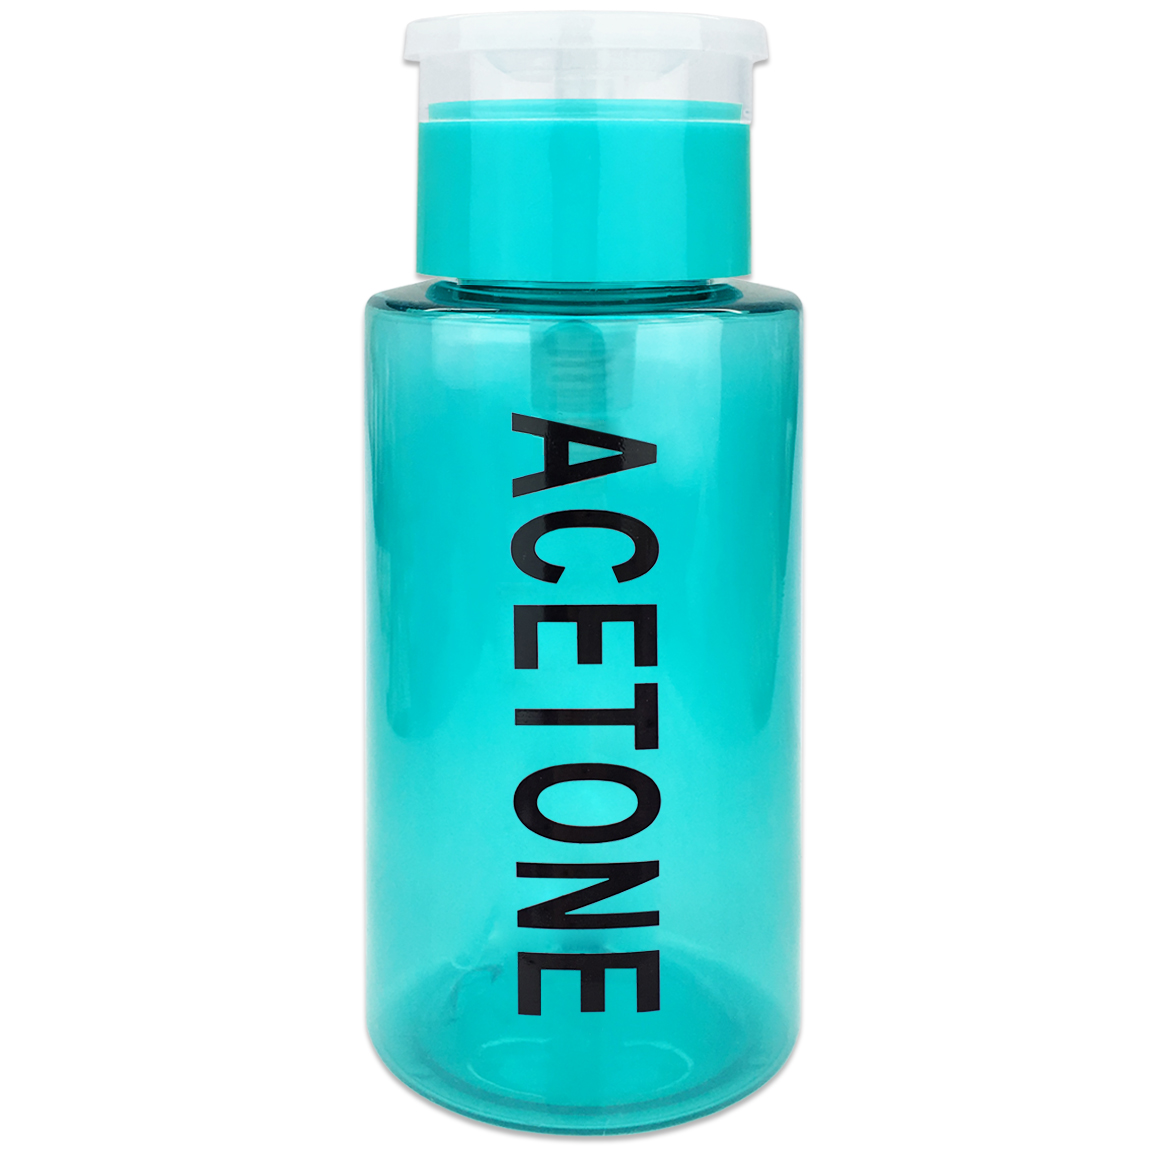 Pana High Quality 7oz Liquid Pump Dispenser With Acetone Label - Teal